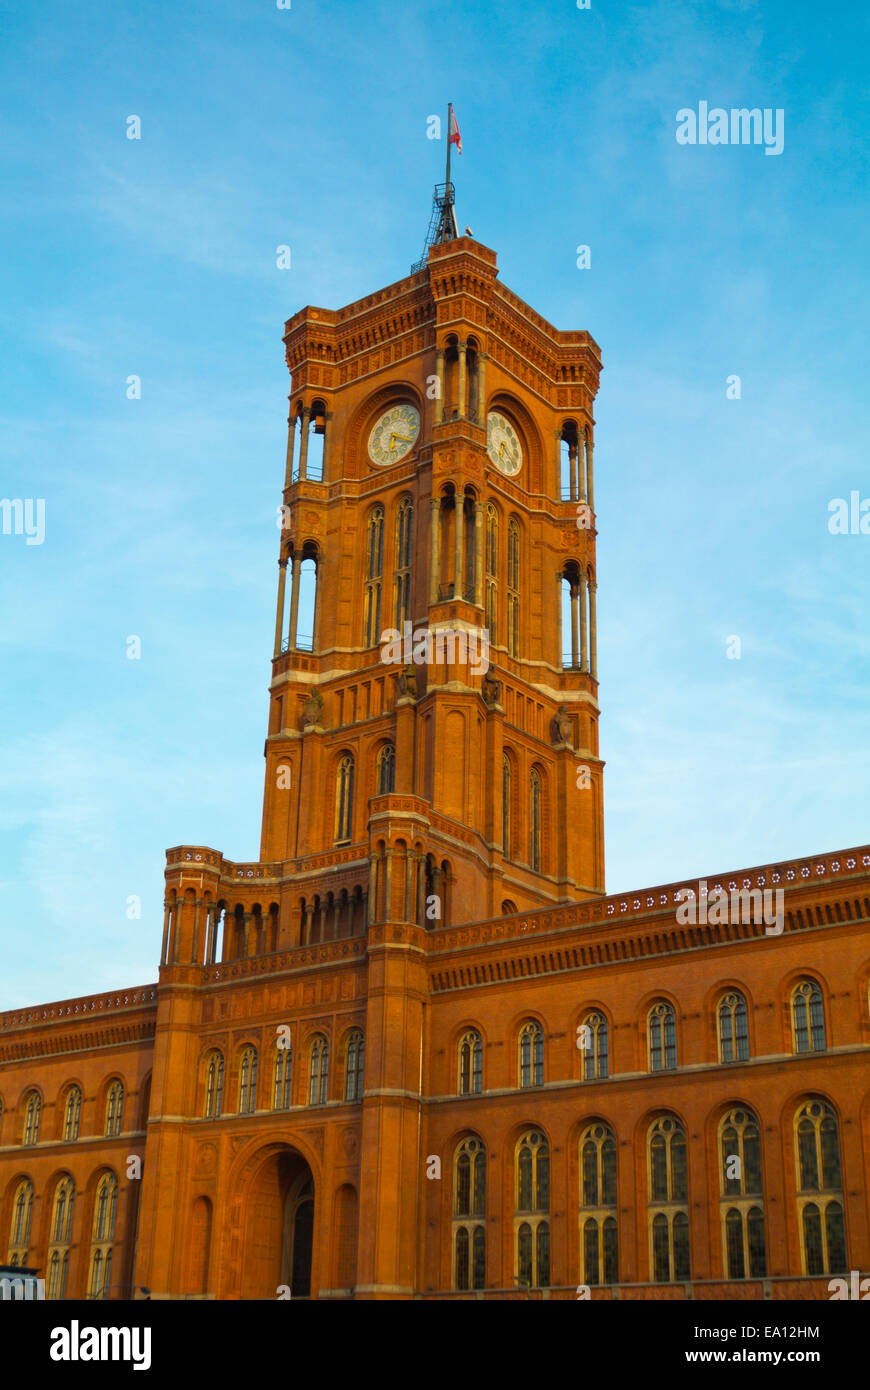 Rötes Rathaus, the red town hall, Alexanderplatz square, Mitte district, east Berlin, Germany - Stock Image